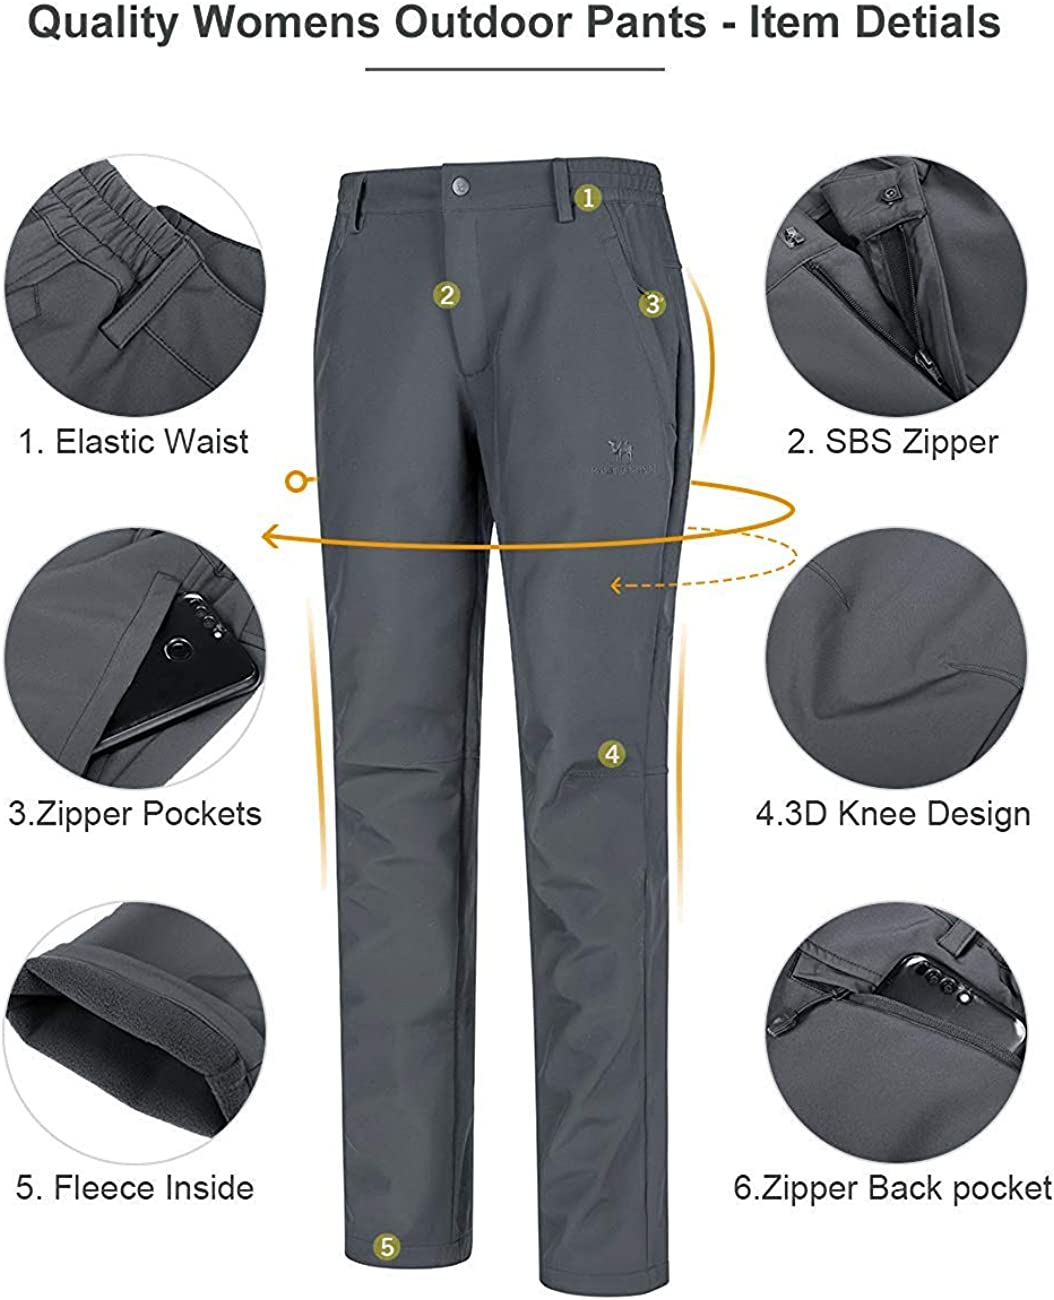 CAMEL CROWN Womens Softshell Pants Waterproof Fleece Lined Warm Hiking Sking Pants Winter Insulated Trousers